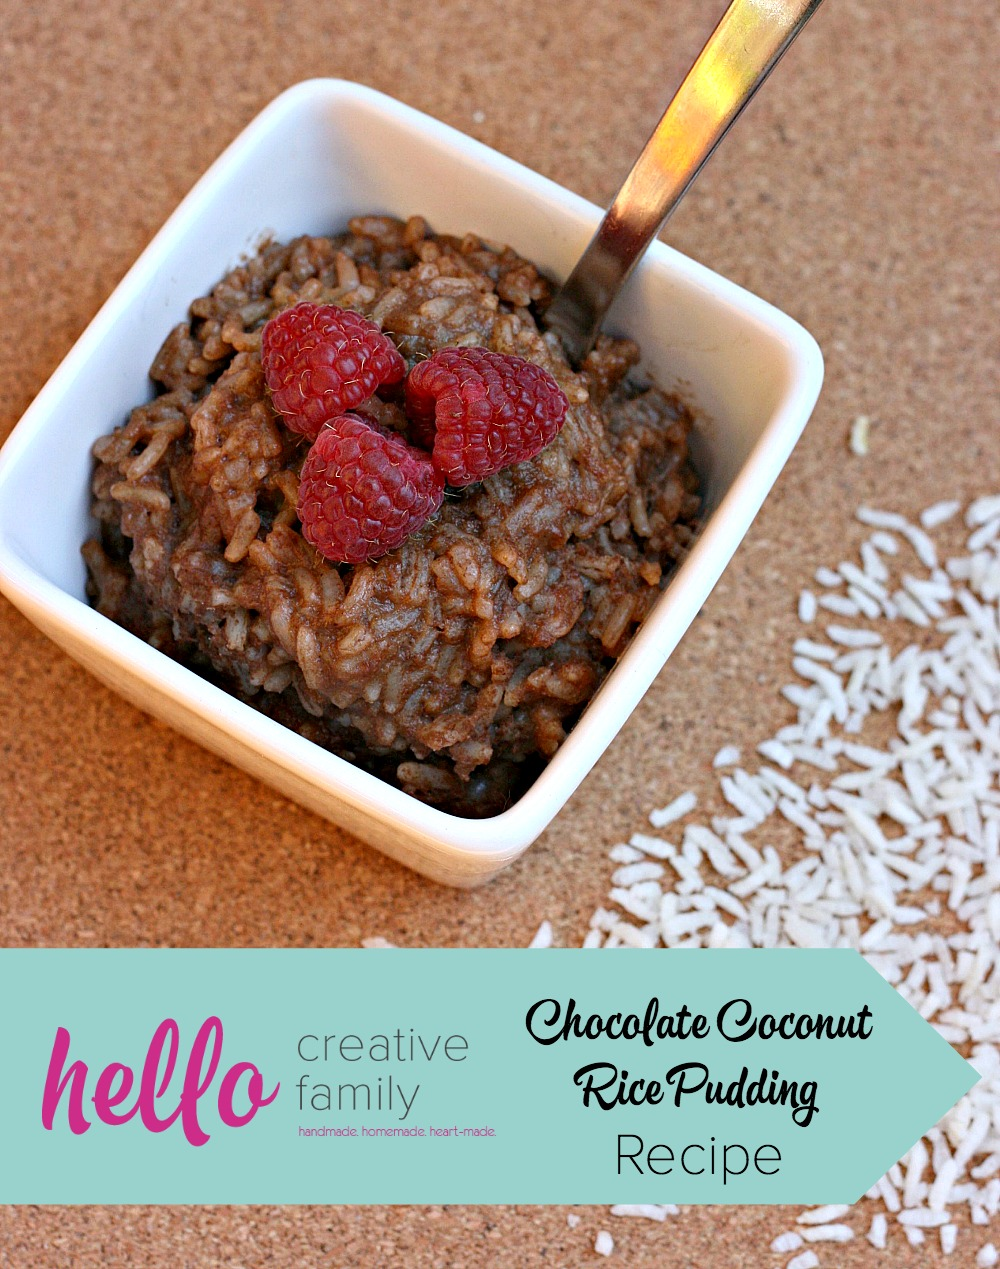 This delicious chocolate coconut rice pudding is cooked using homemade chocolate coconut milk and takes less than 20 minutes to make